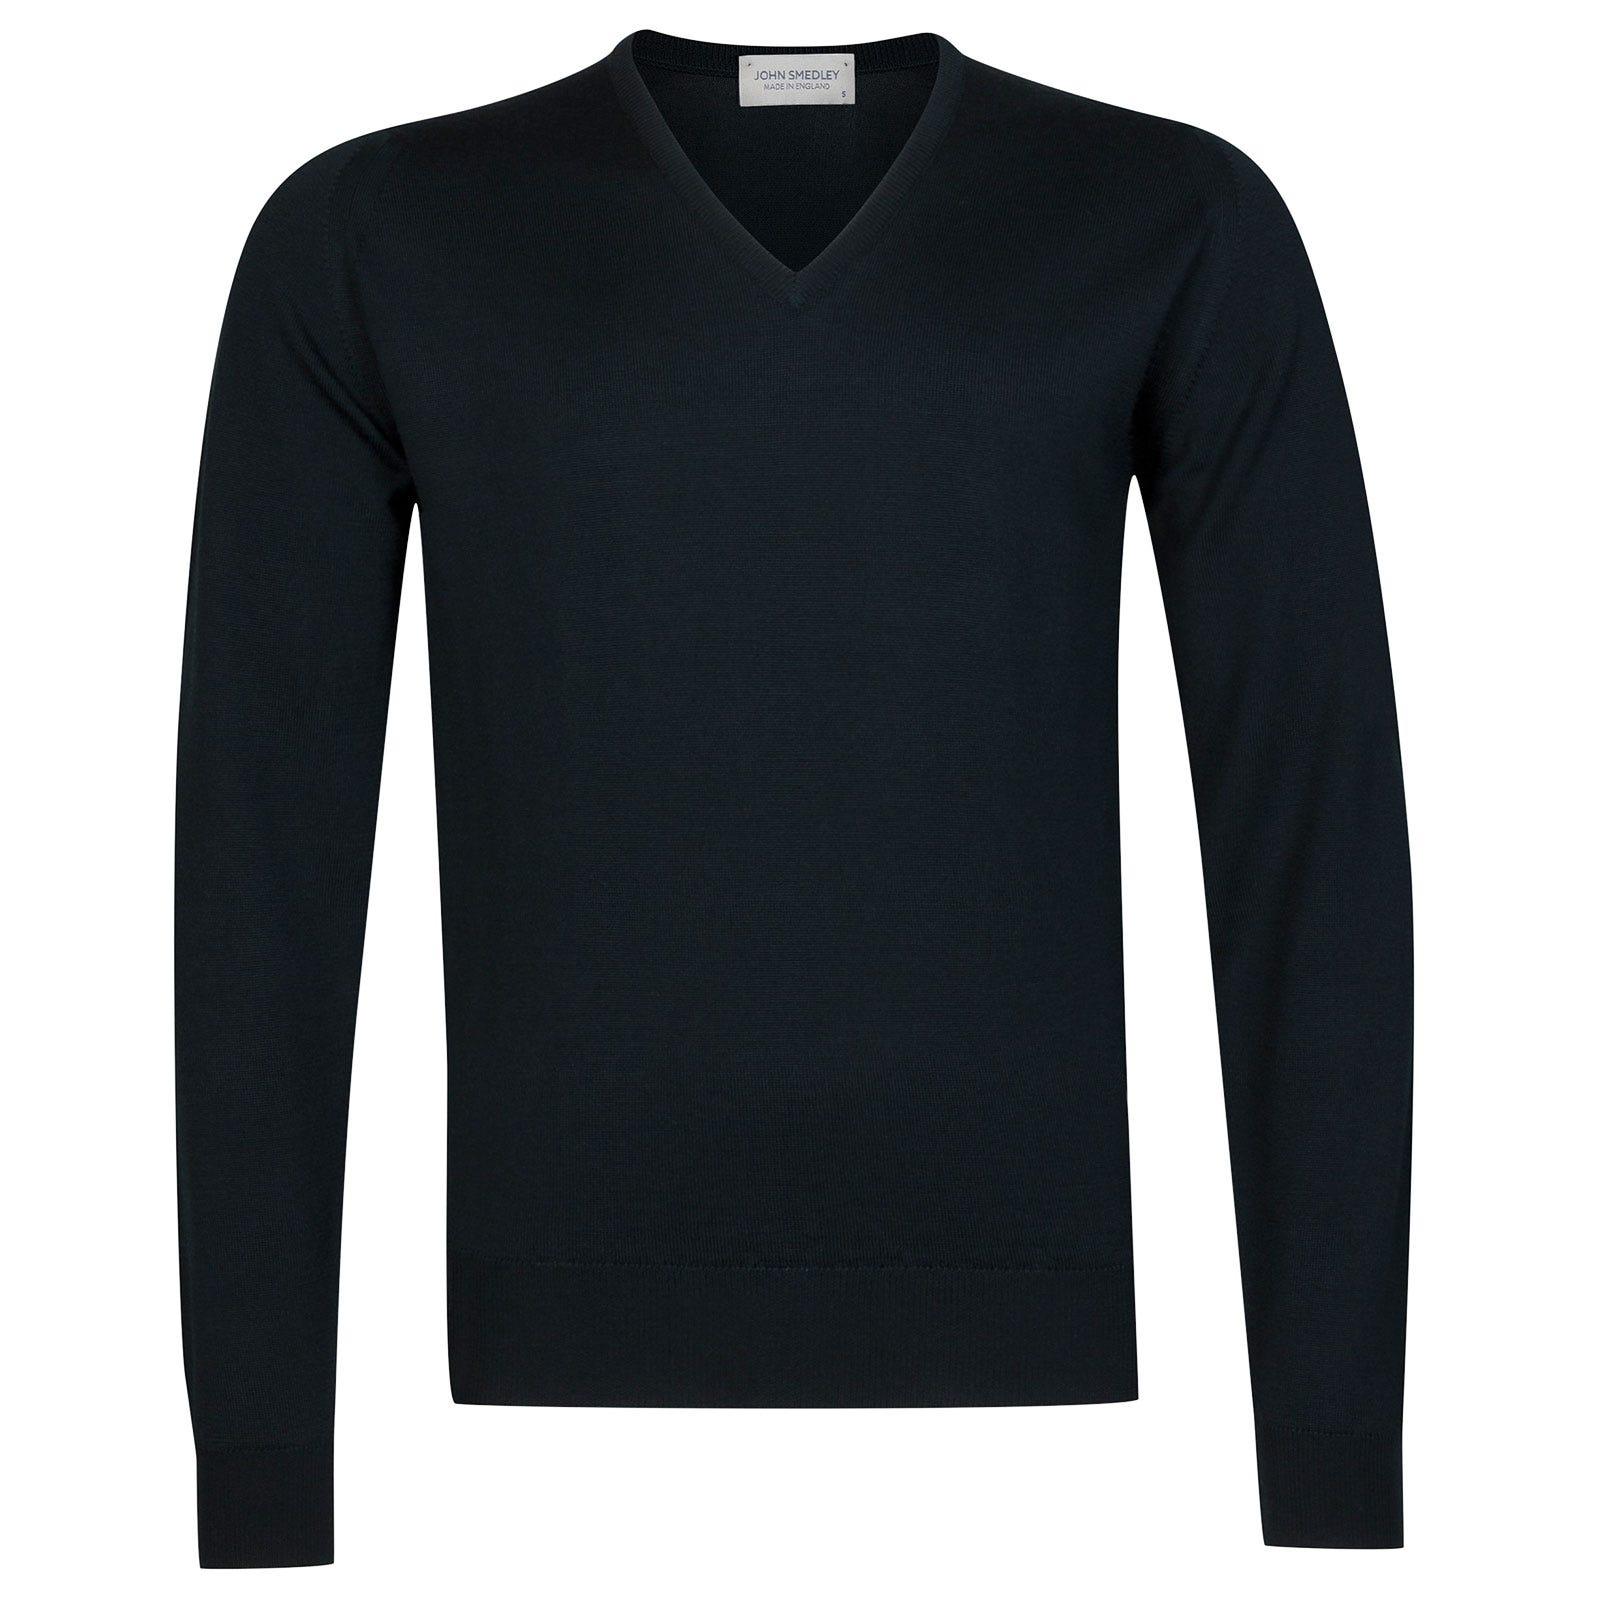 John Smedley Riber Merino Wool Pullover in Racing Green-S